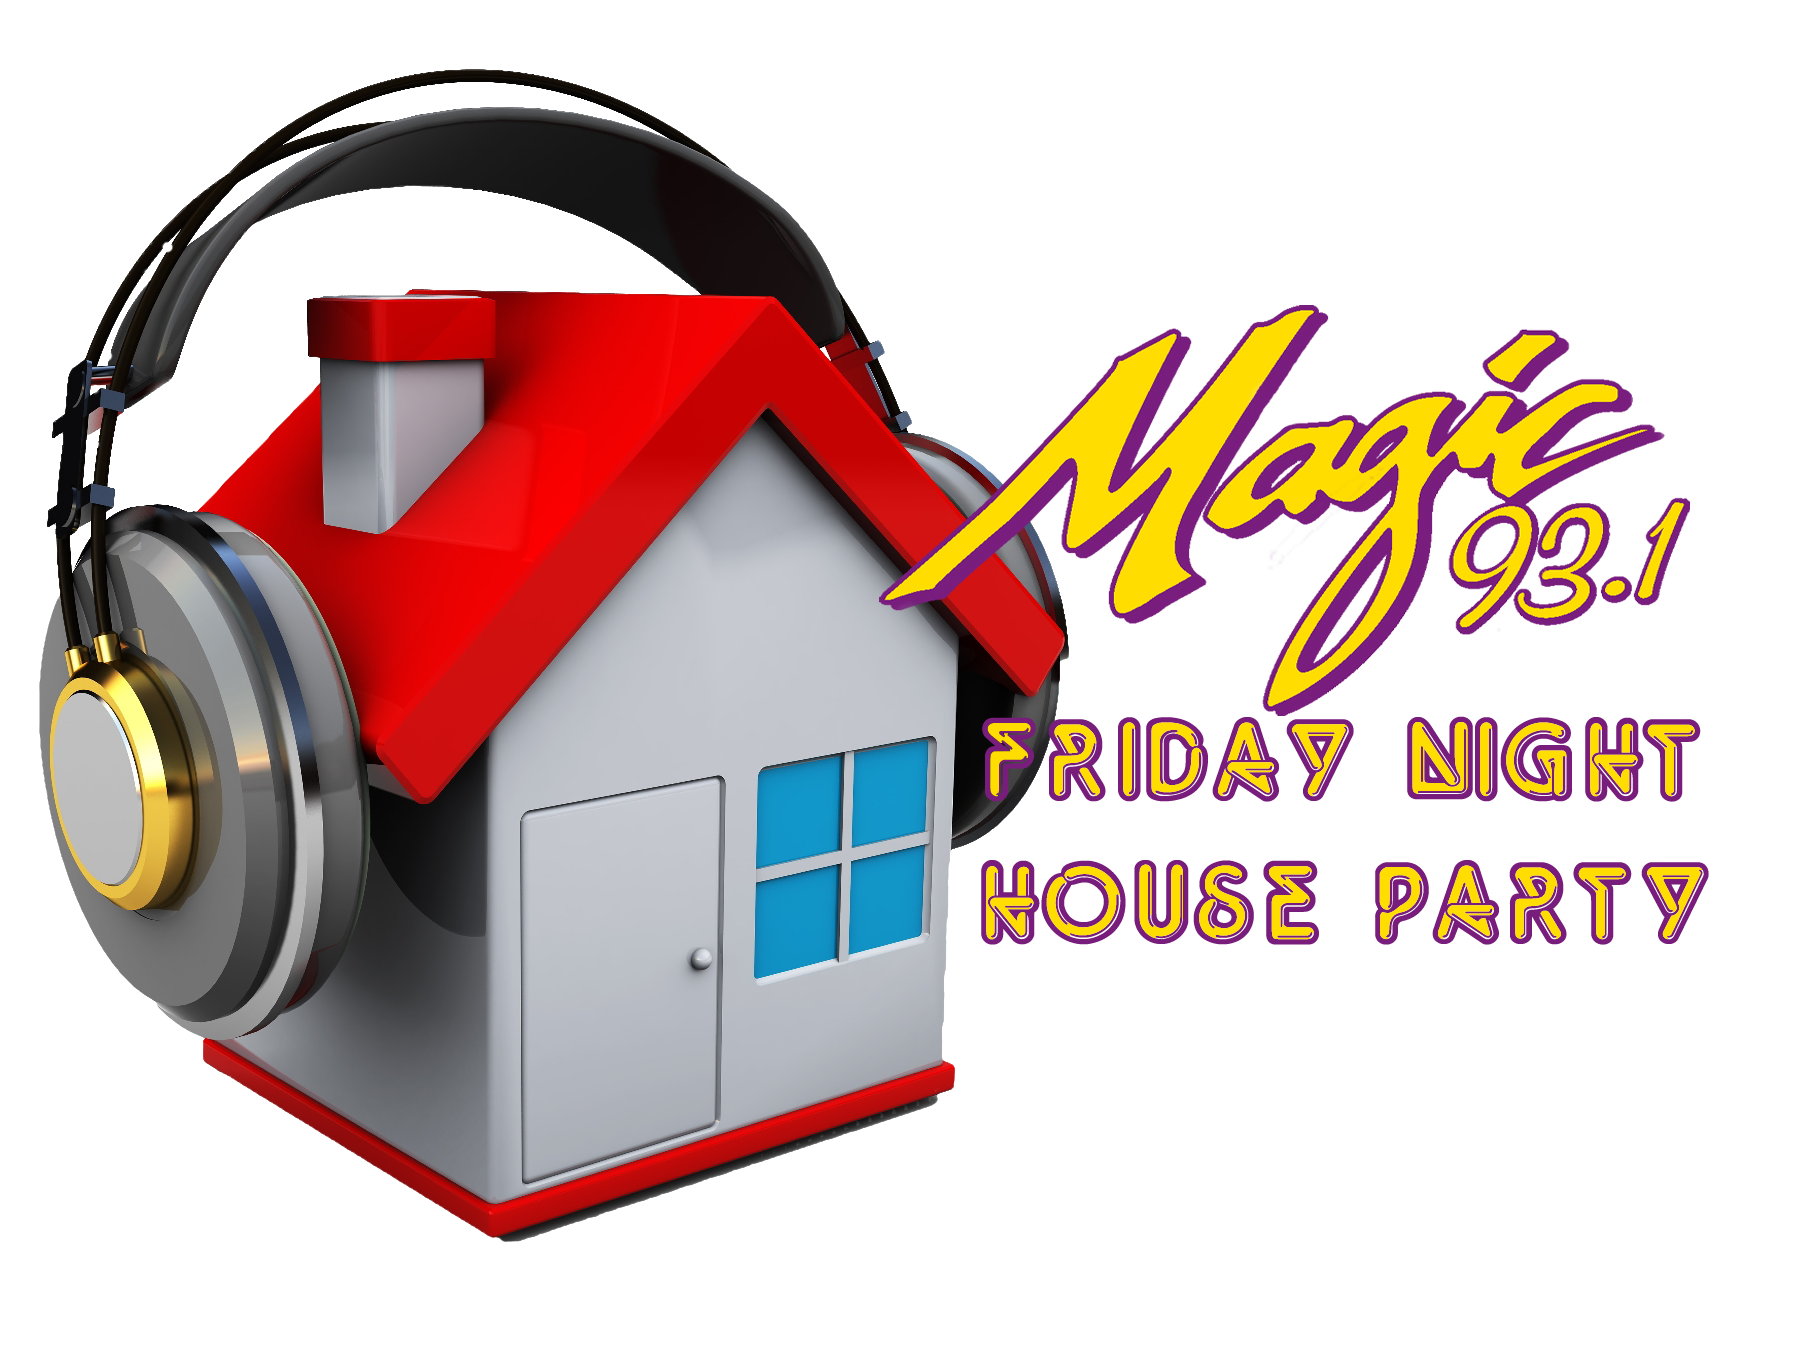 Friday Night House Party